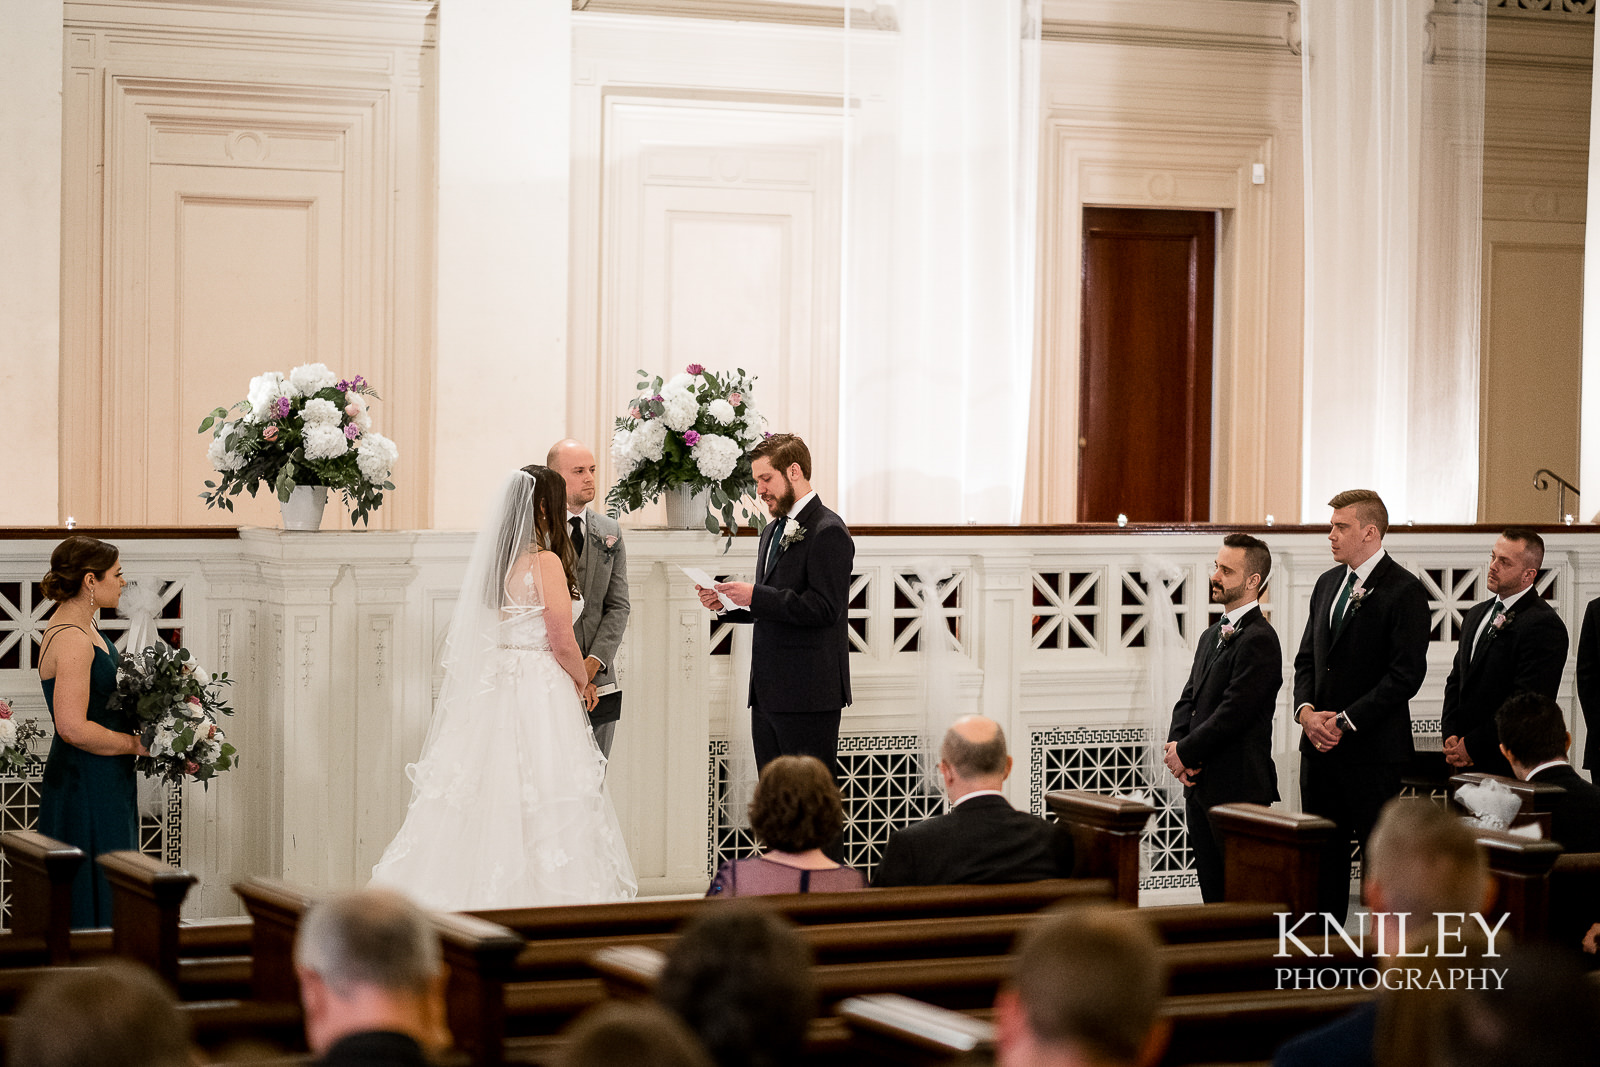 21-Karpeles-Manuscript-Library-Museum-Wedding-Buffalo-NY-Kniley-Photography.jpg